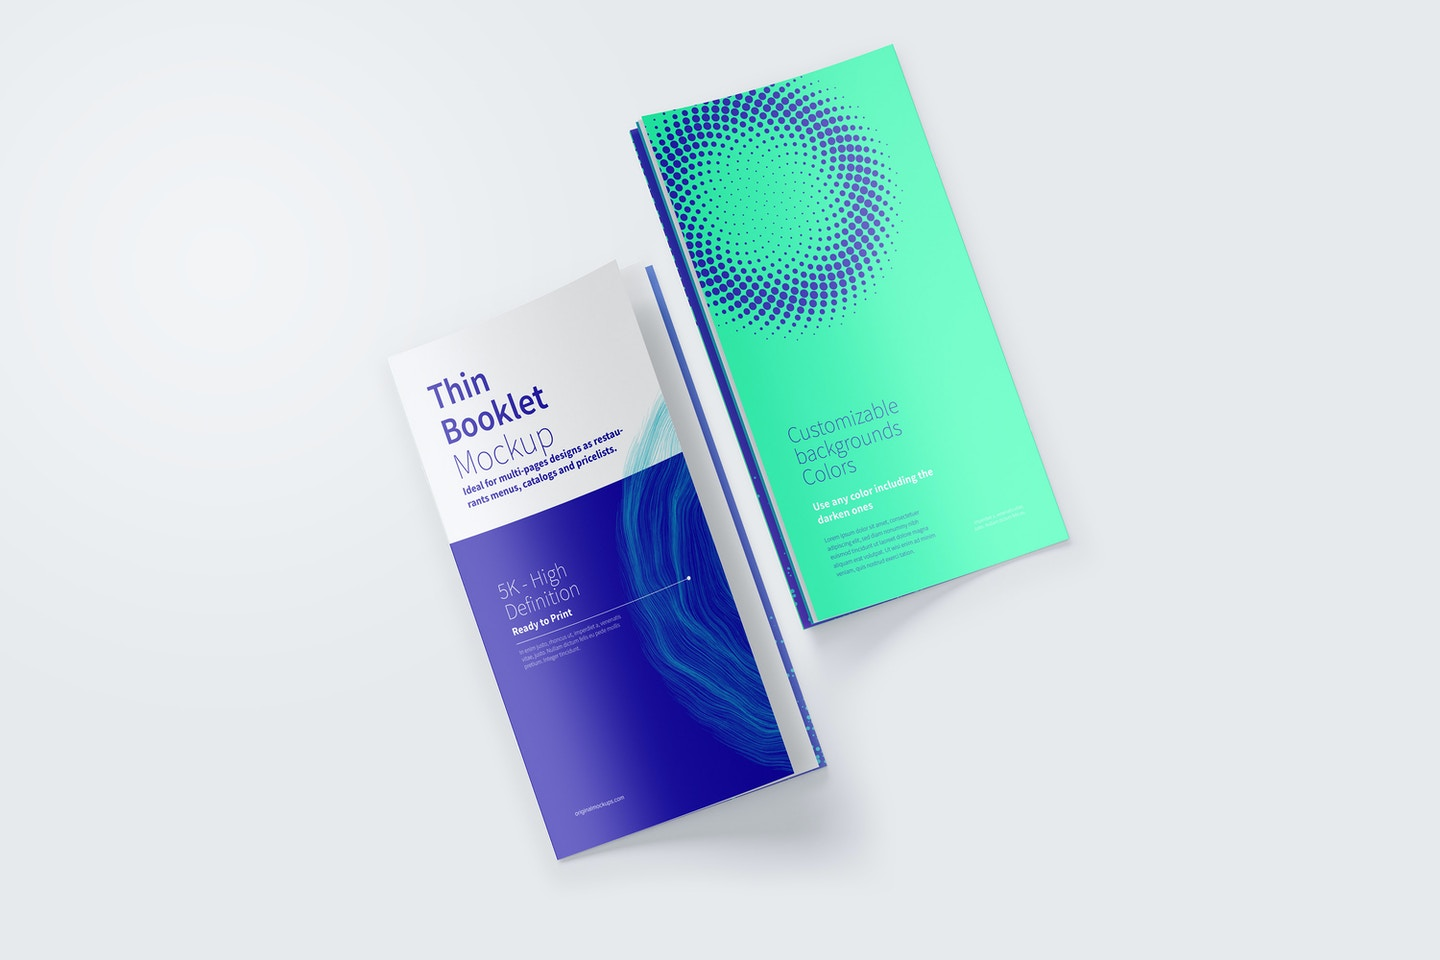 Great presentation in overview of a cover and back cover